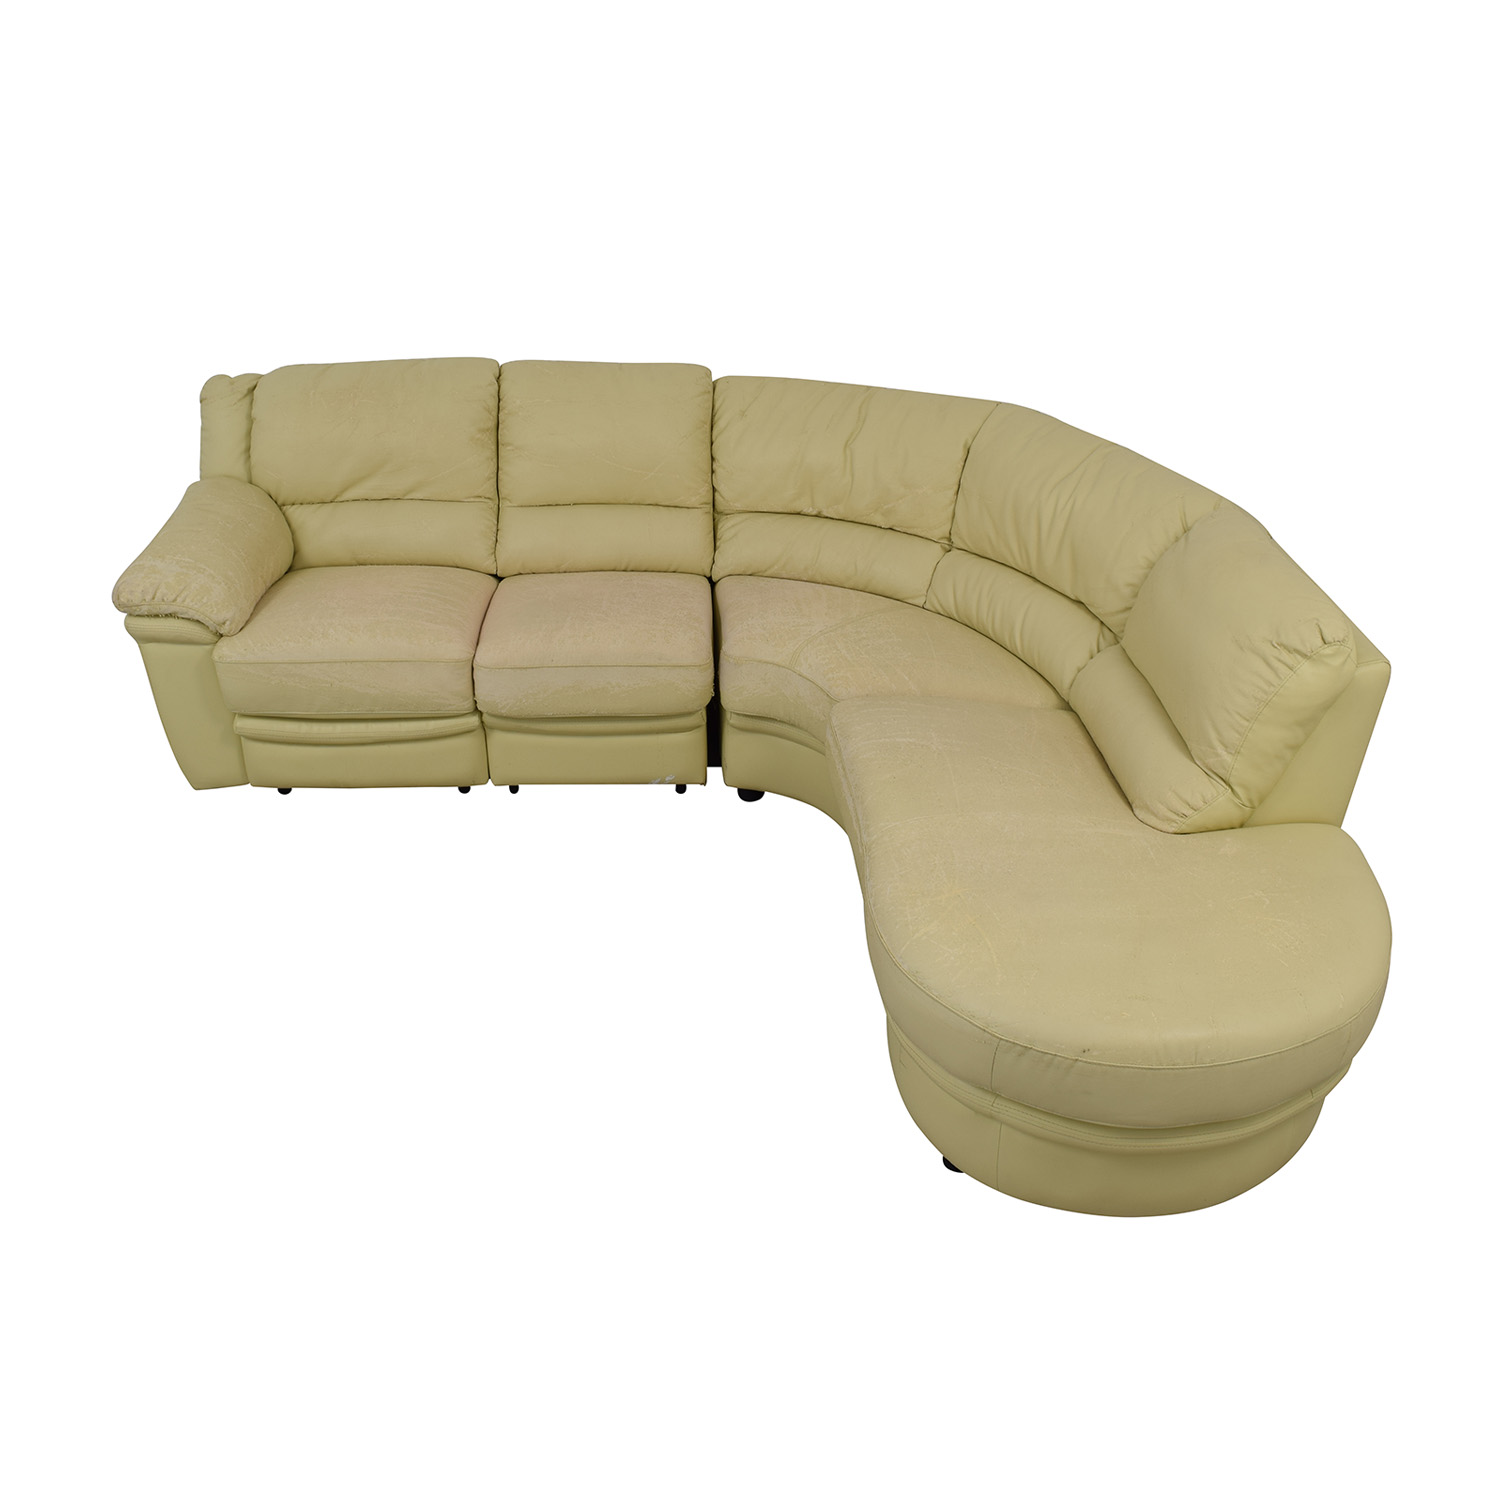 Beige L-Shaped One Reclining Chair Sectional price